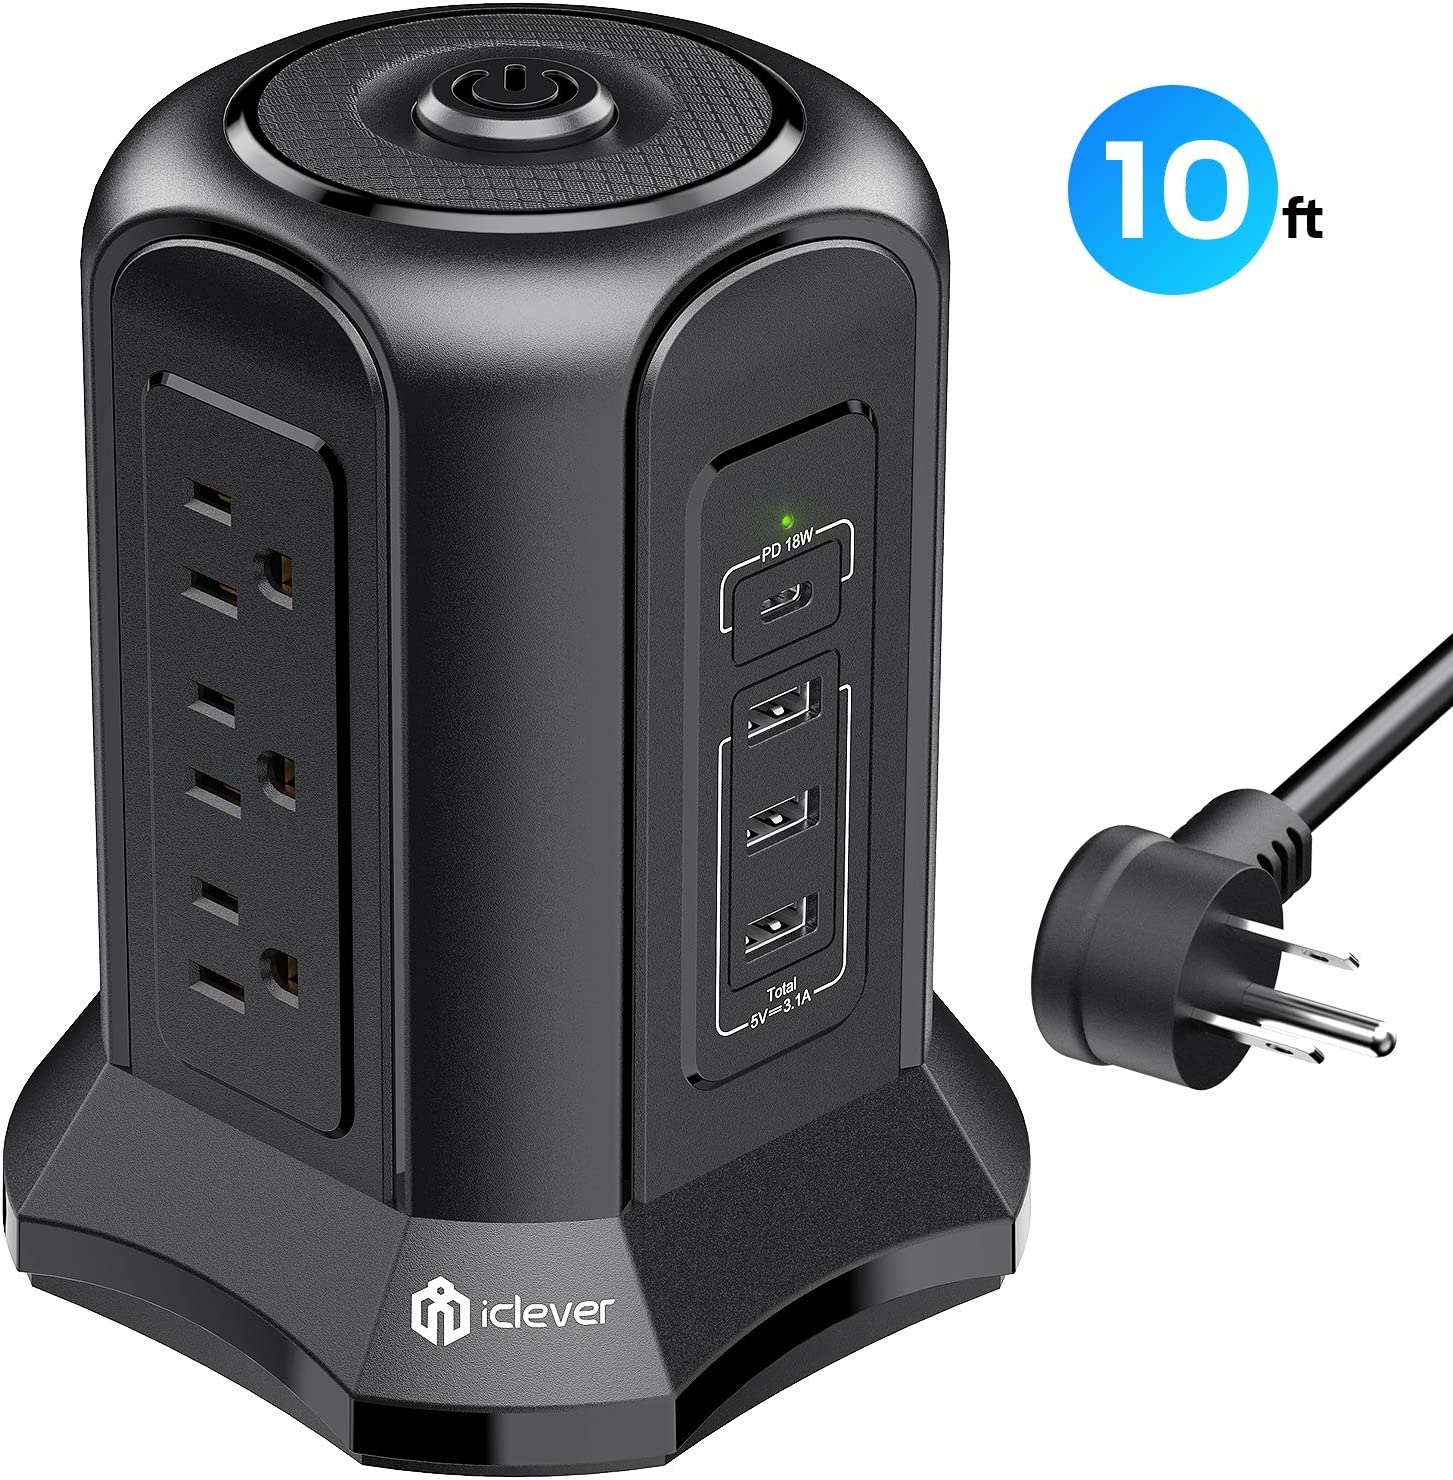 Power Strip Tower Surge Protector, iClever 9 AC Outlets,15.5W 3 USB-A Port, 18W PD 1 Type C USB-C Charging Port and 10ft Extension Cord with Overload Protected, Power Strip Flat Plug for Home Office